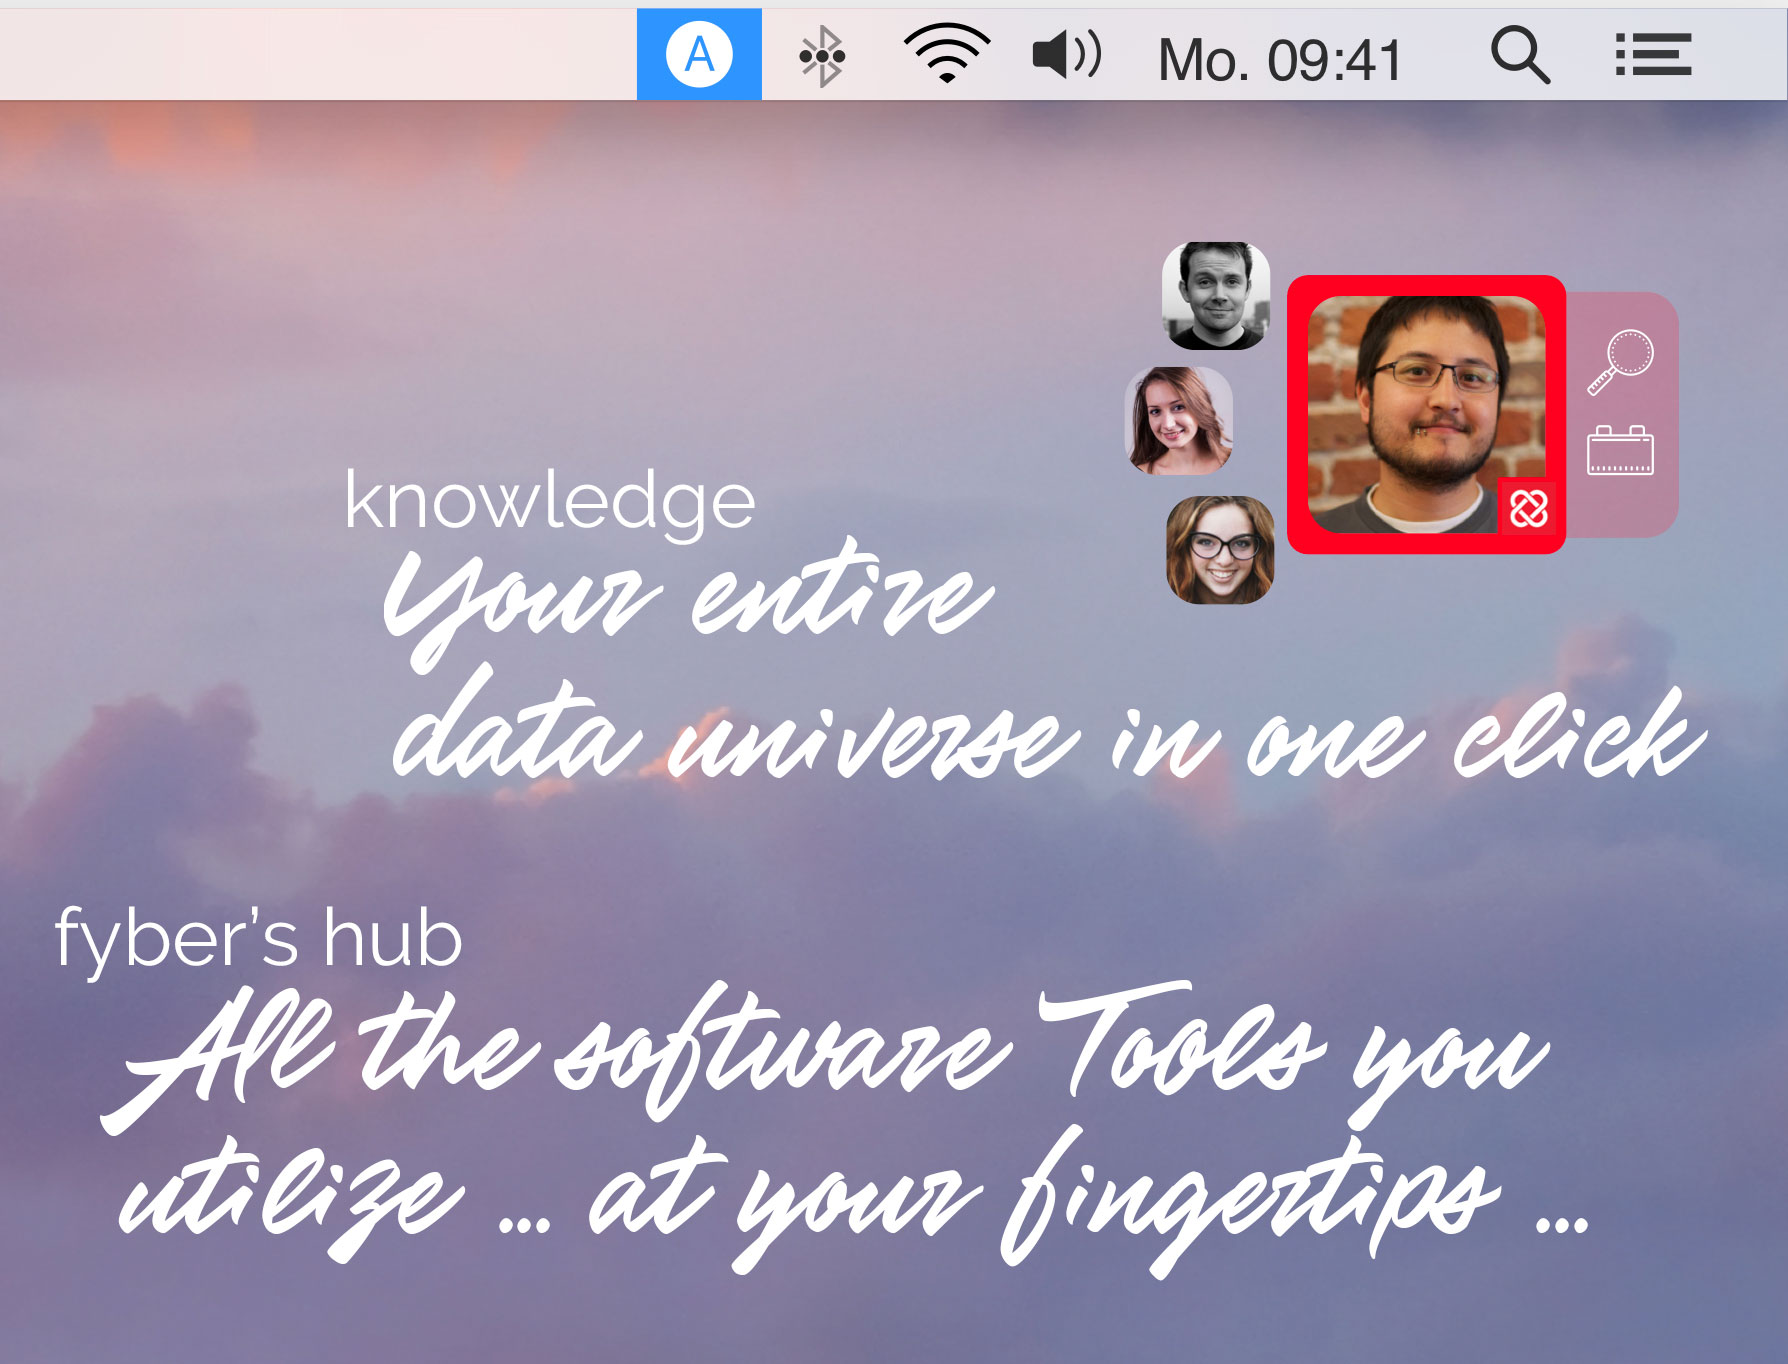 knowledge_fybers_hub